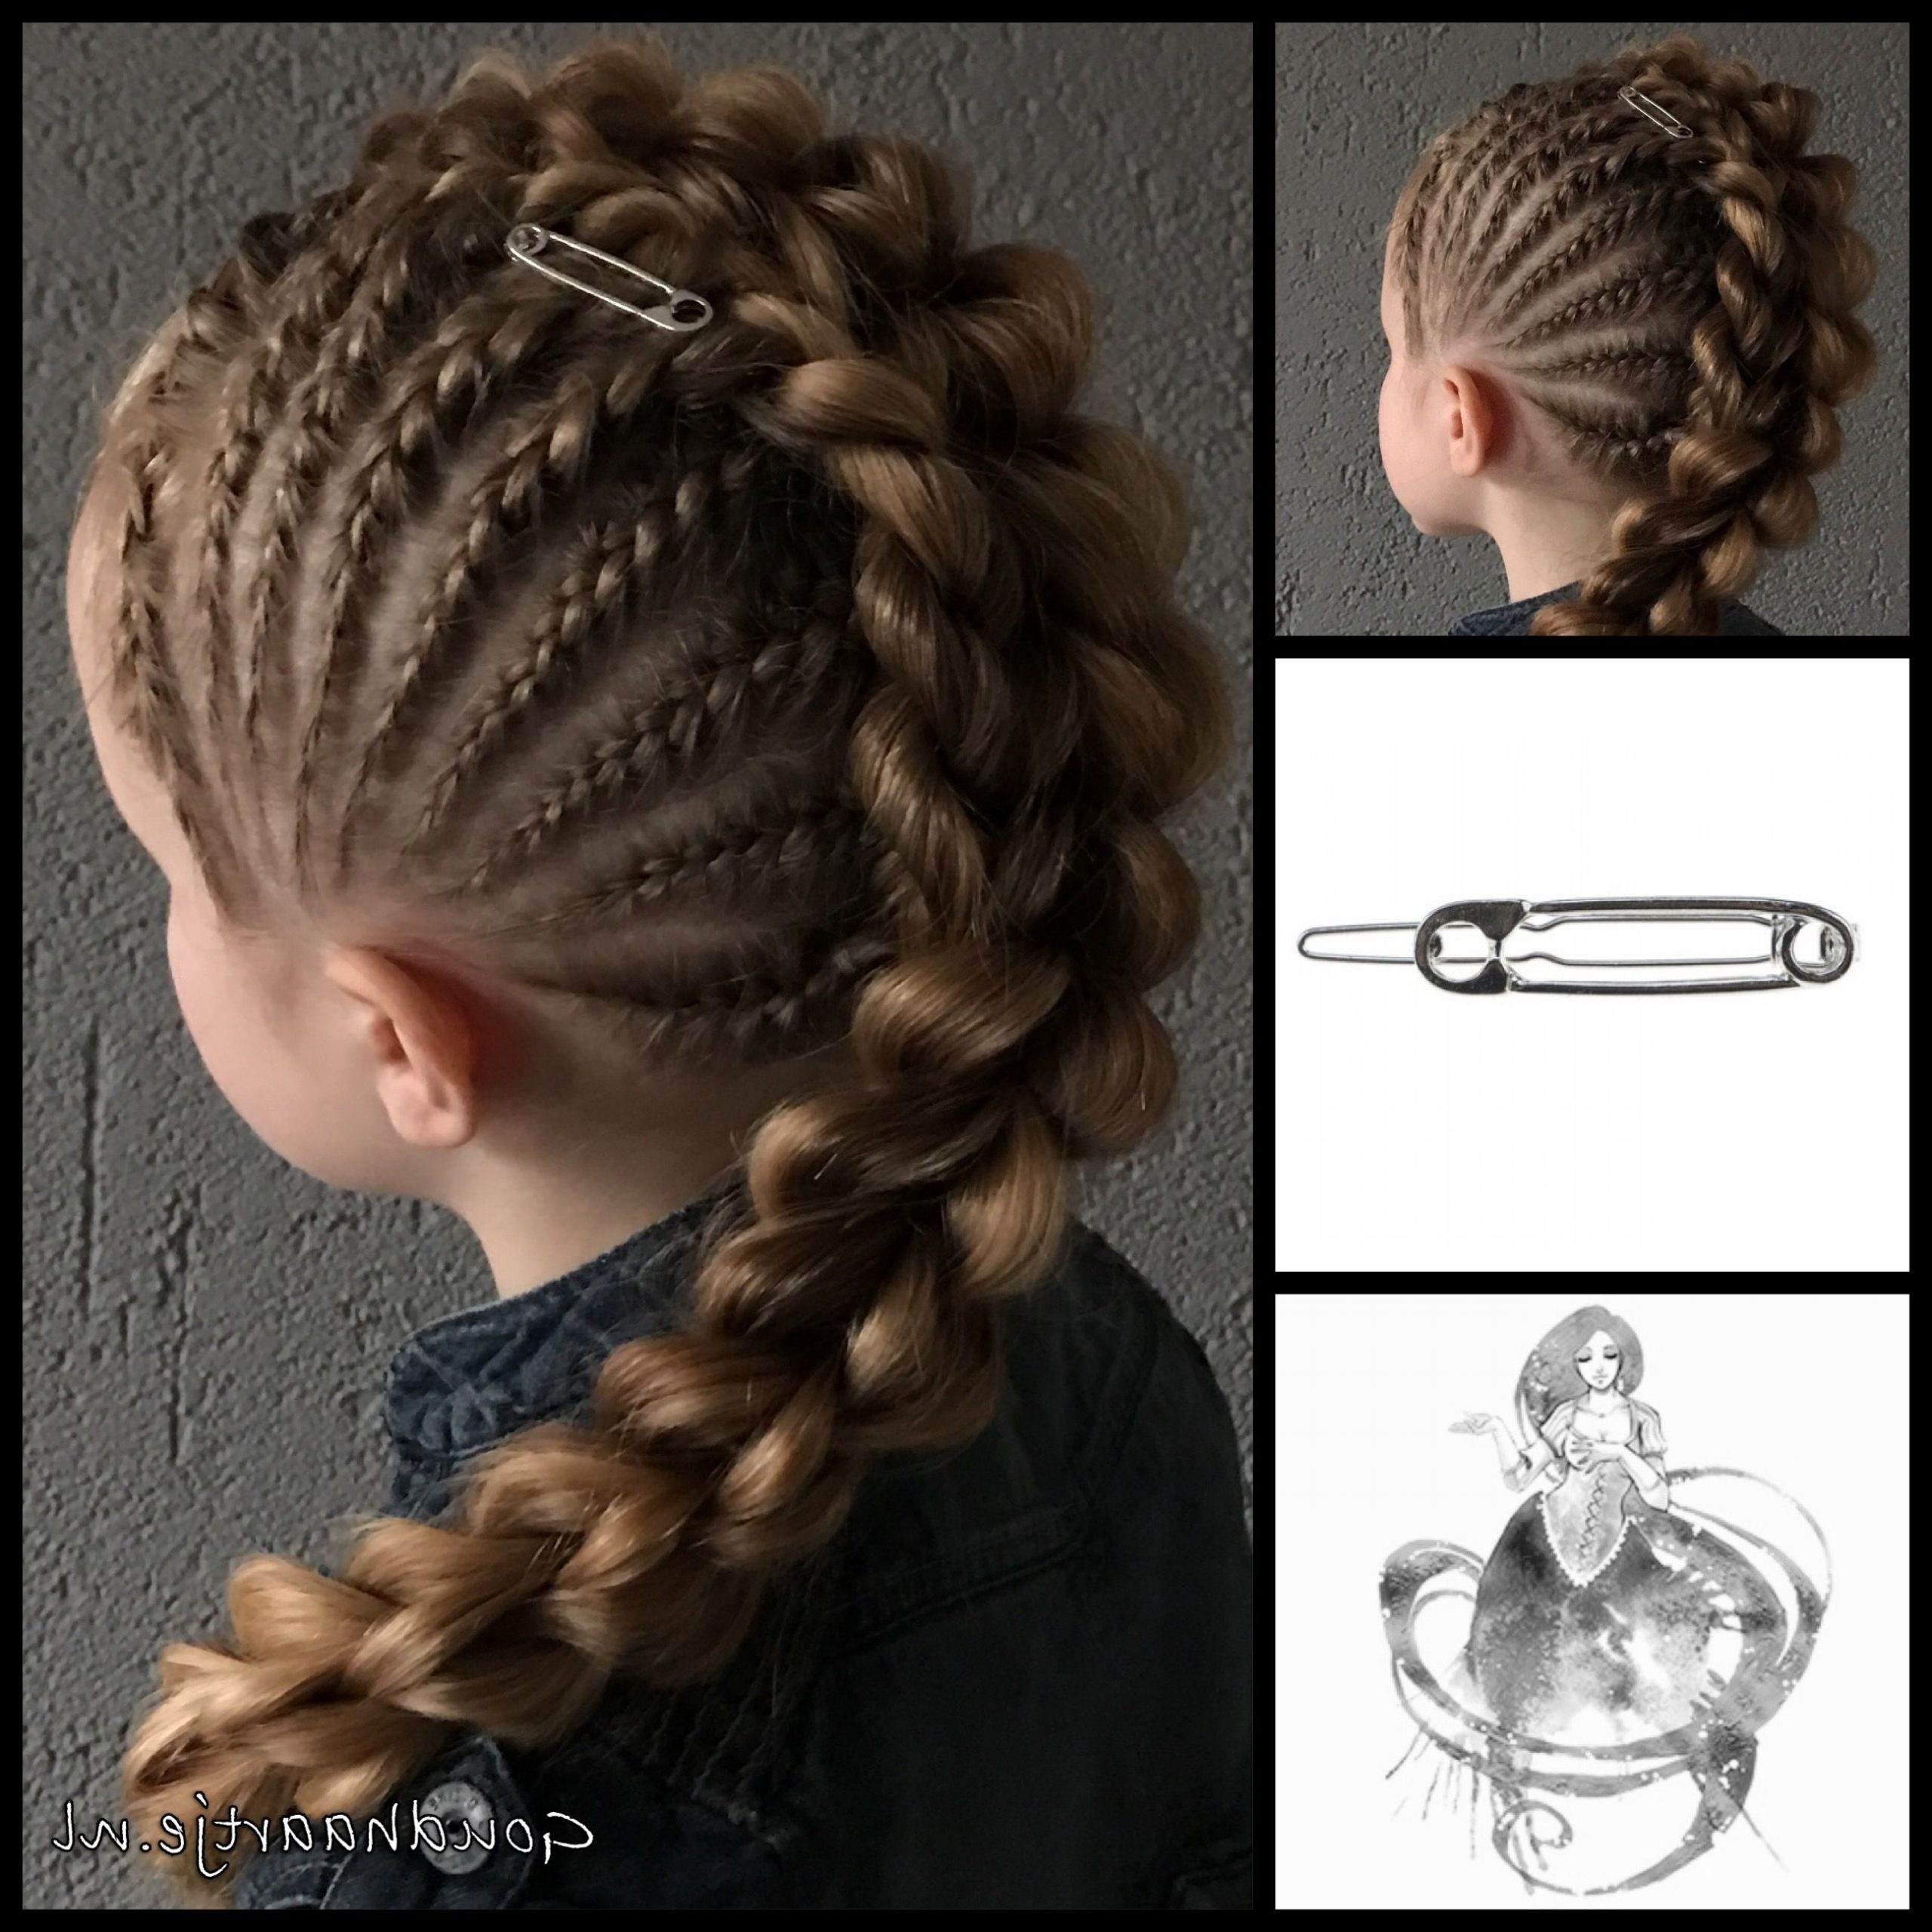 Braided Hairstyles, Hair, Braids Within Most Current Three Strand Long Side Braid Hairstyles (View 14 of 20)